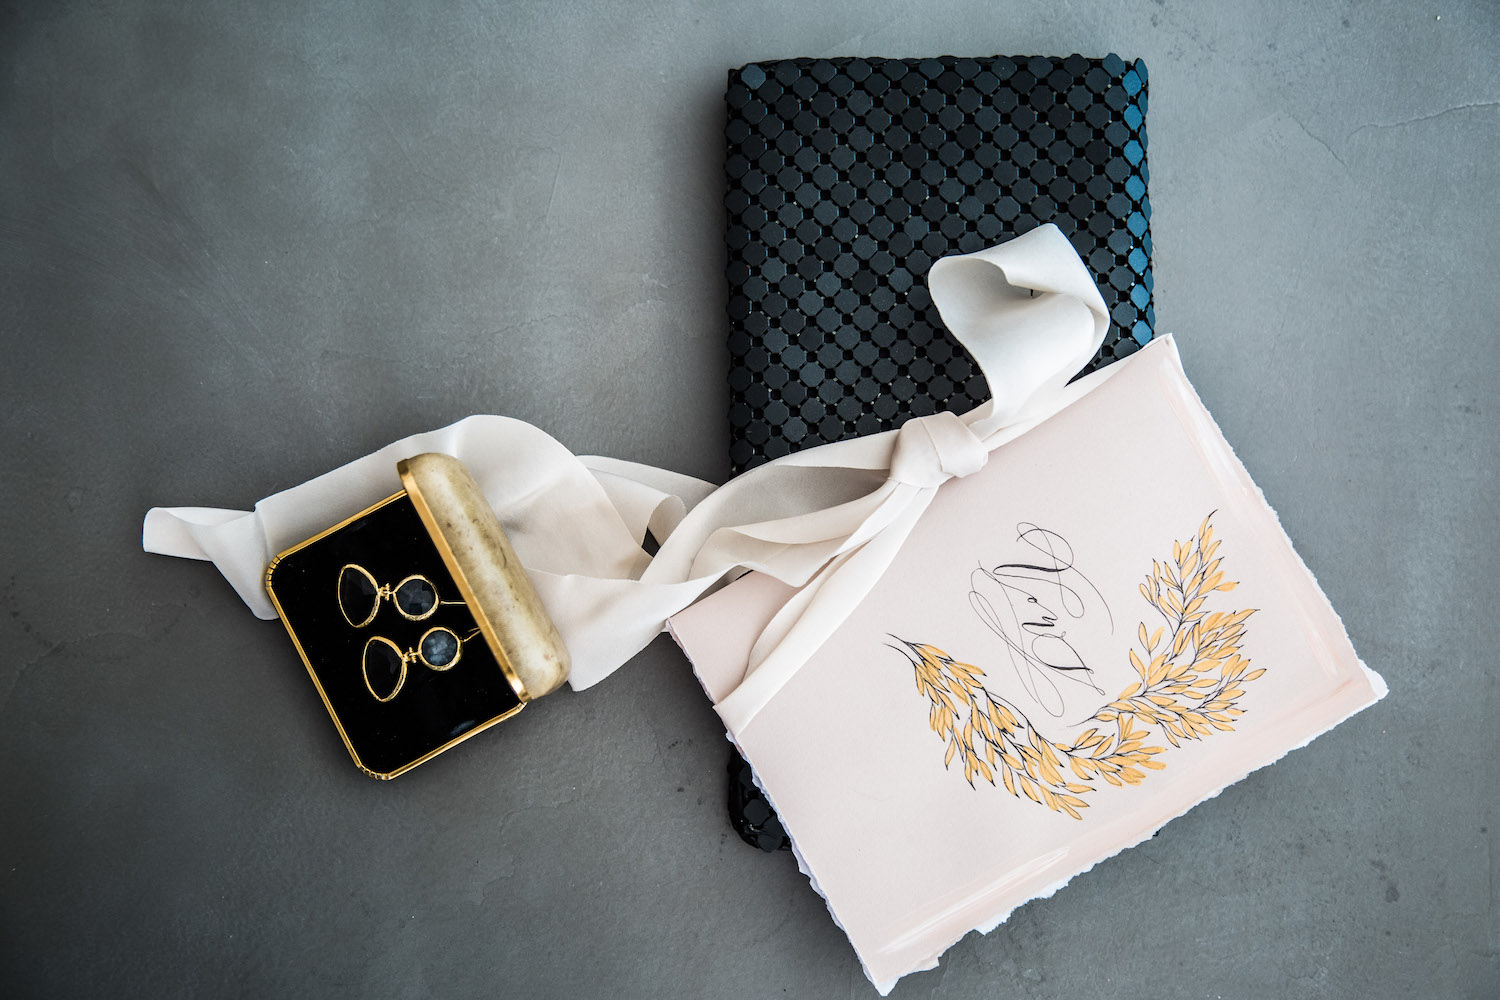 Vow book made on pale blush paper with gold leaves design styled on a black handbag